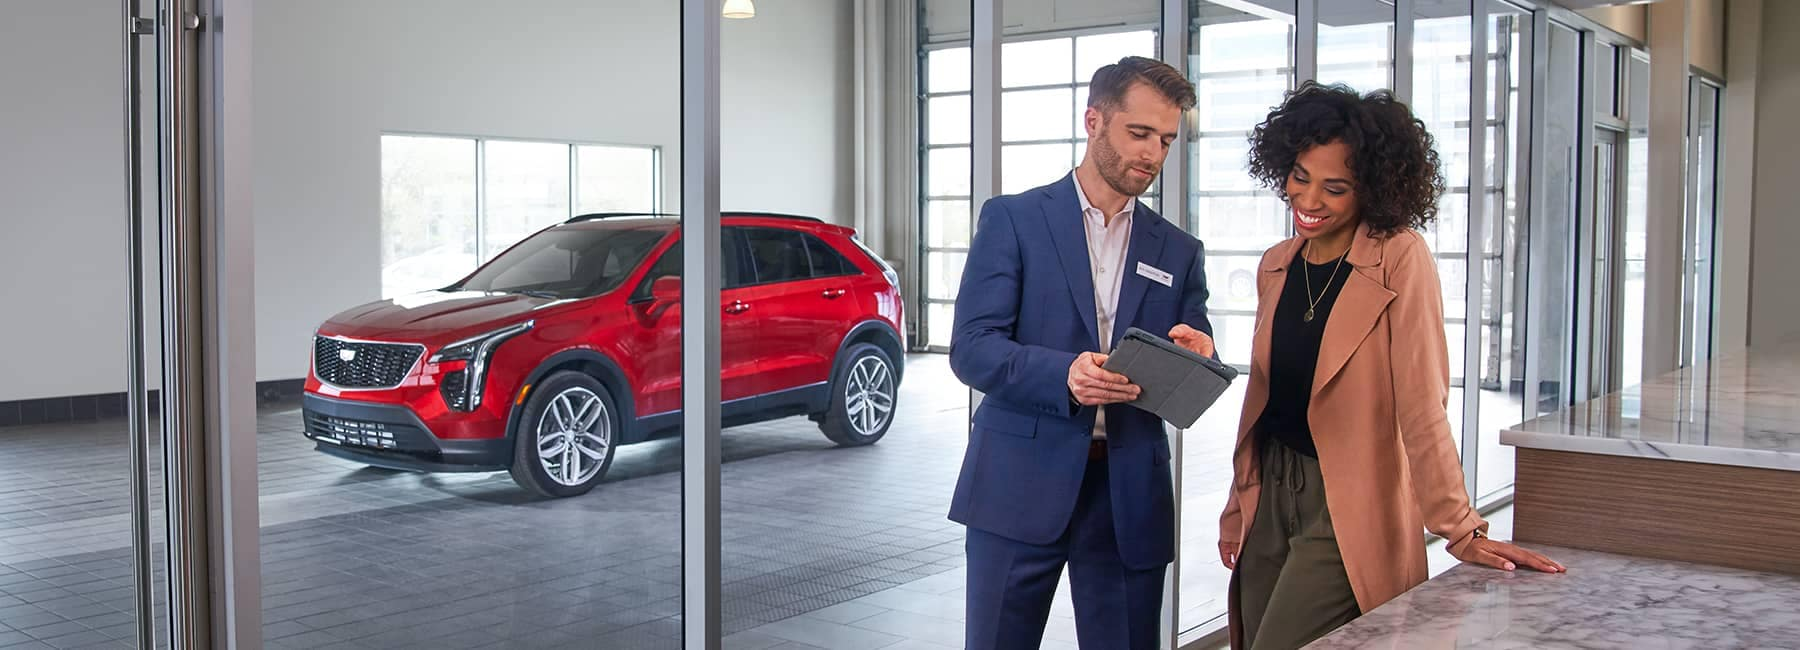 A Sales Rep with a customer in a dealership